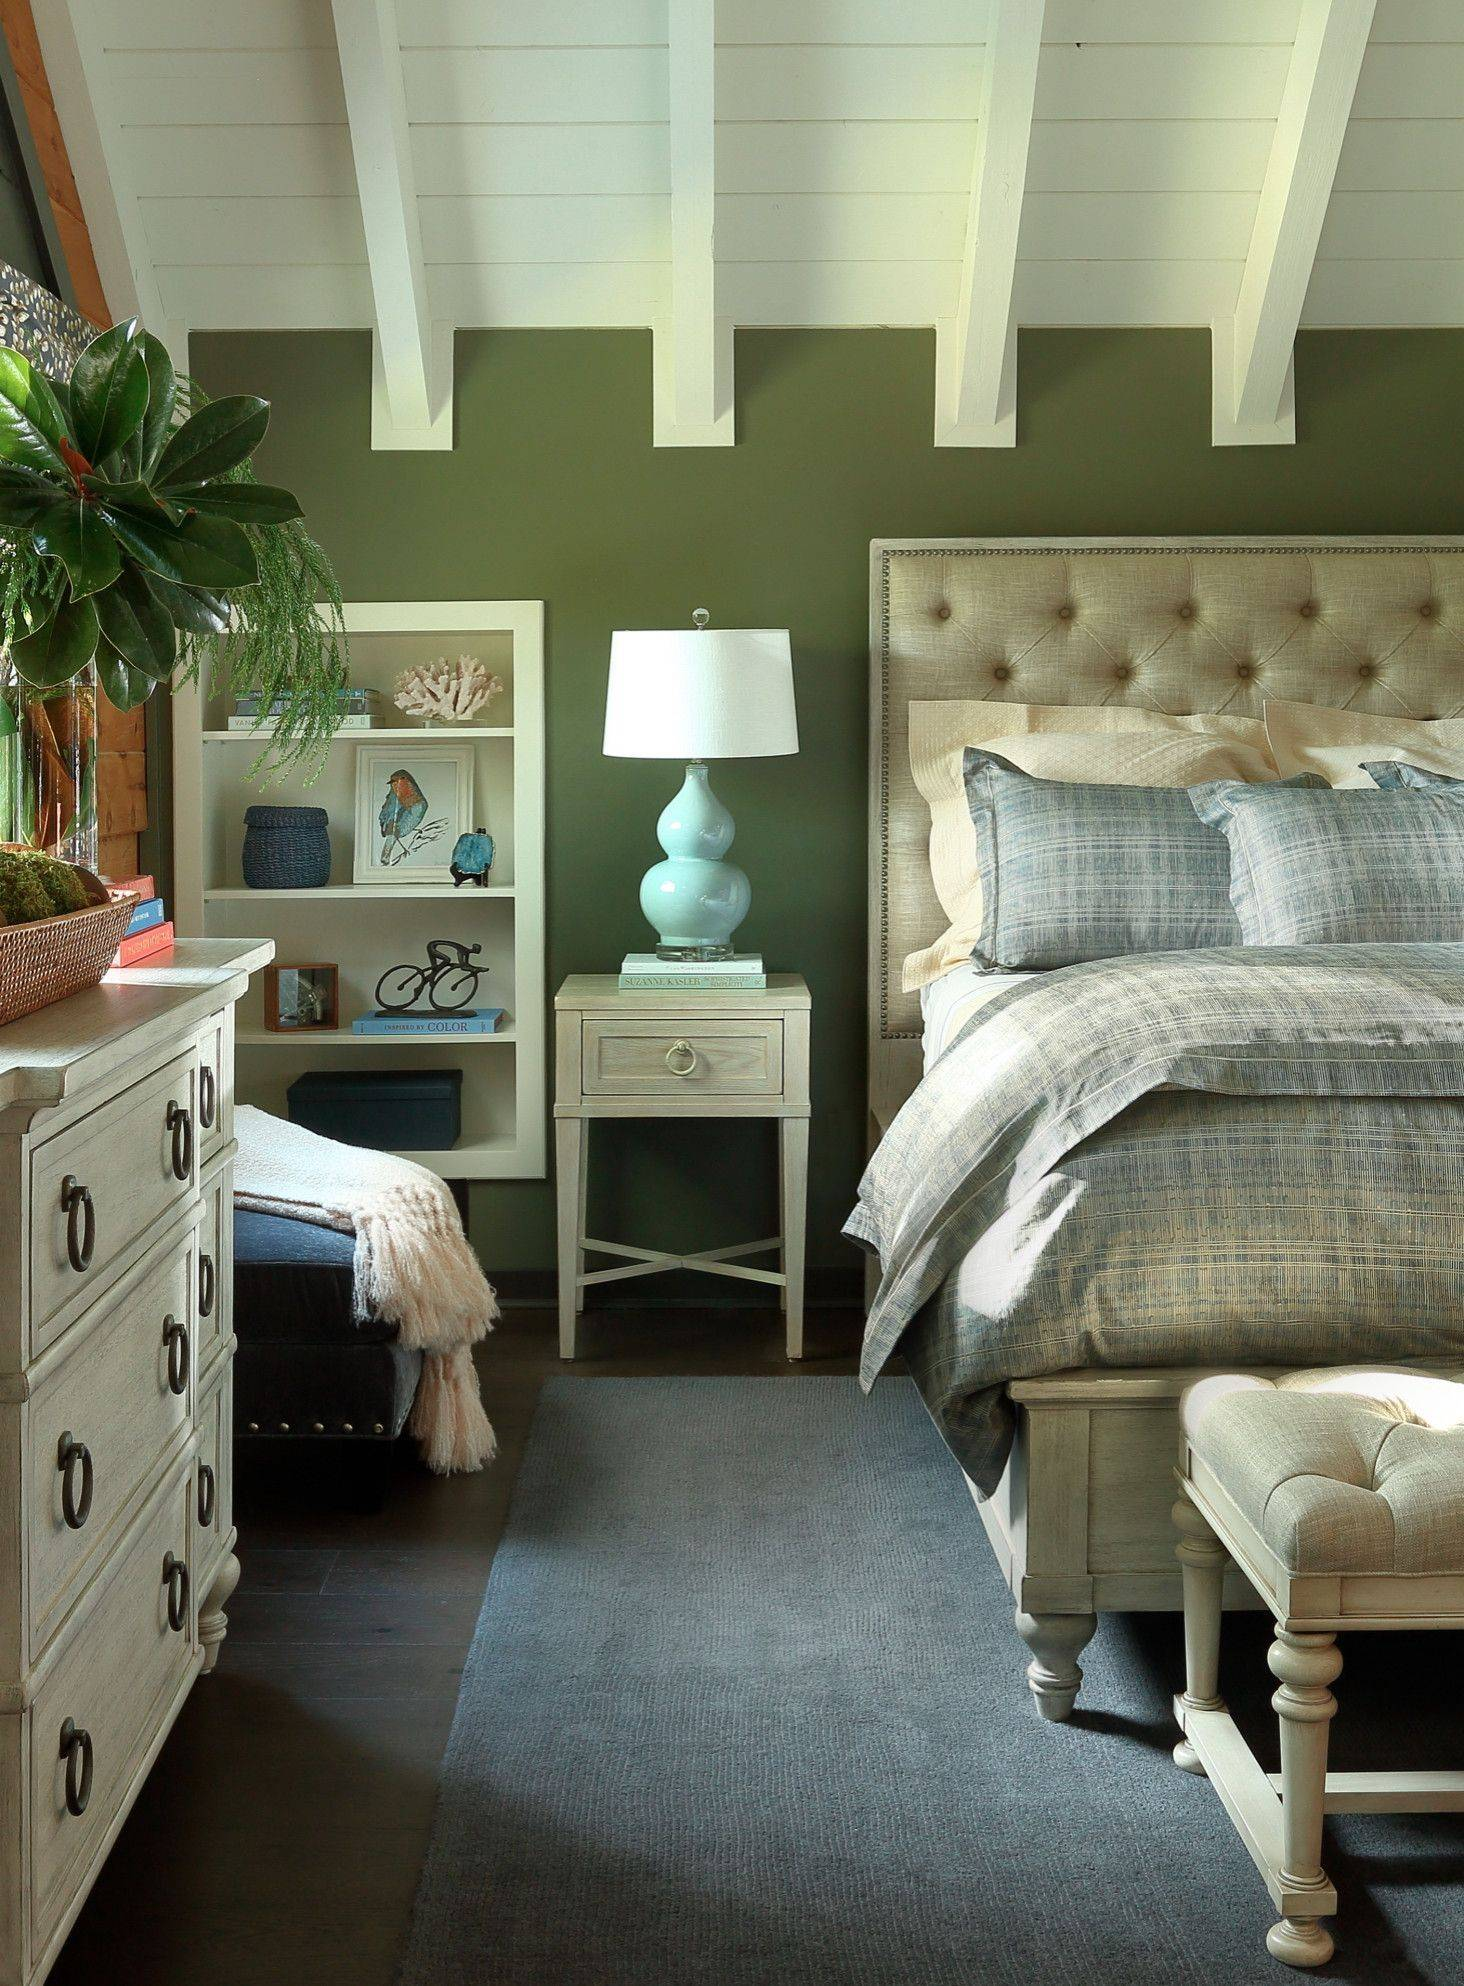 Rustic-bedroom-with-shiplap-vaulted-ceiling-and-fabulous-dark-green-walls-46122